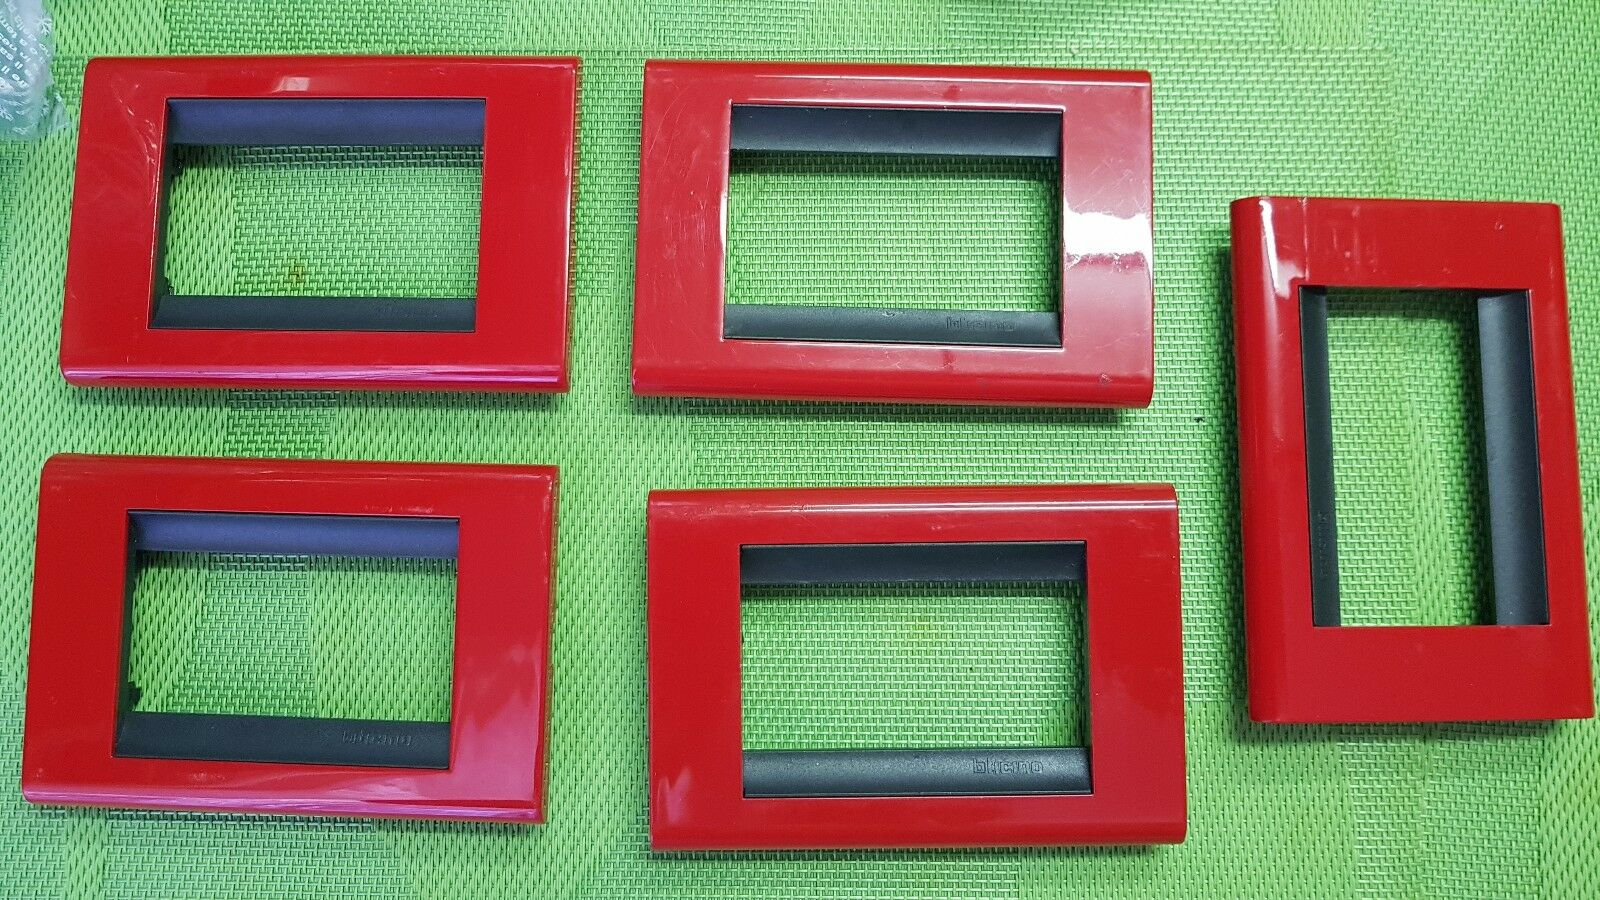 5 PLACCHE BTICINO LIVING CLASSIC A 3 POSTI color red COD.4713RS